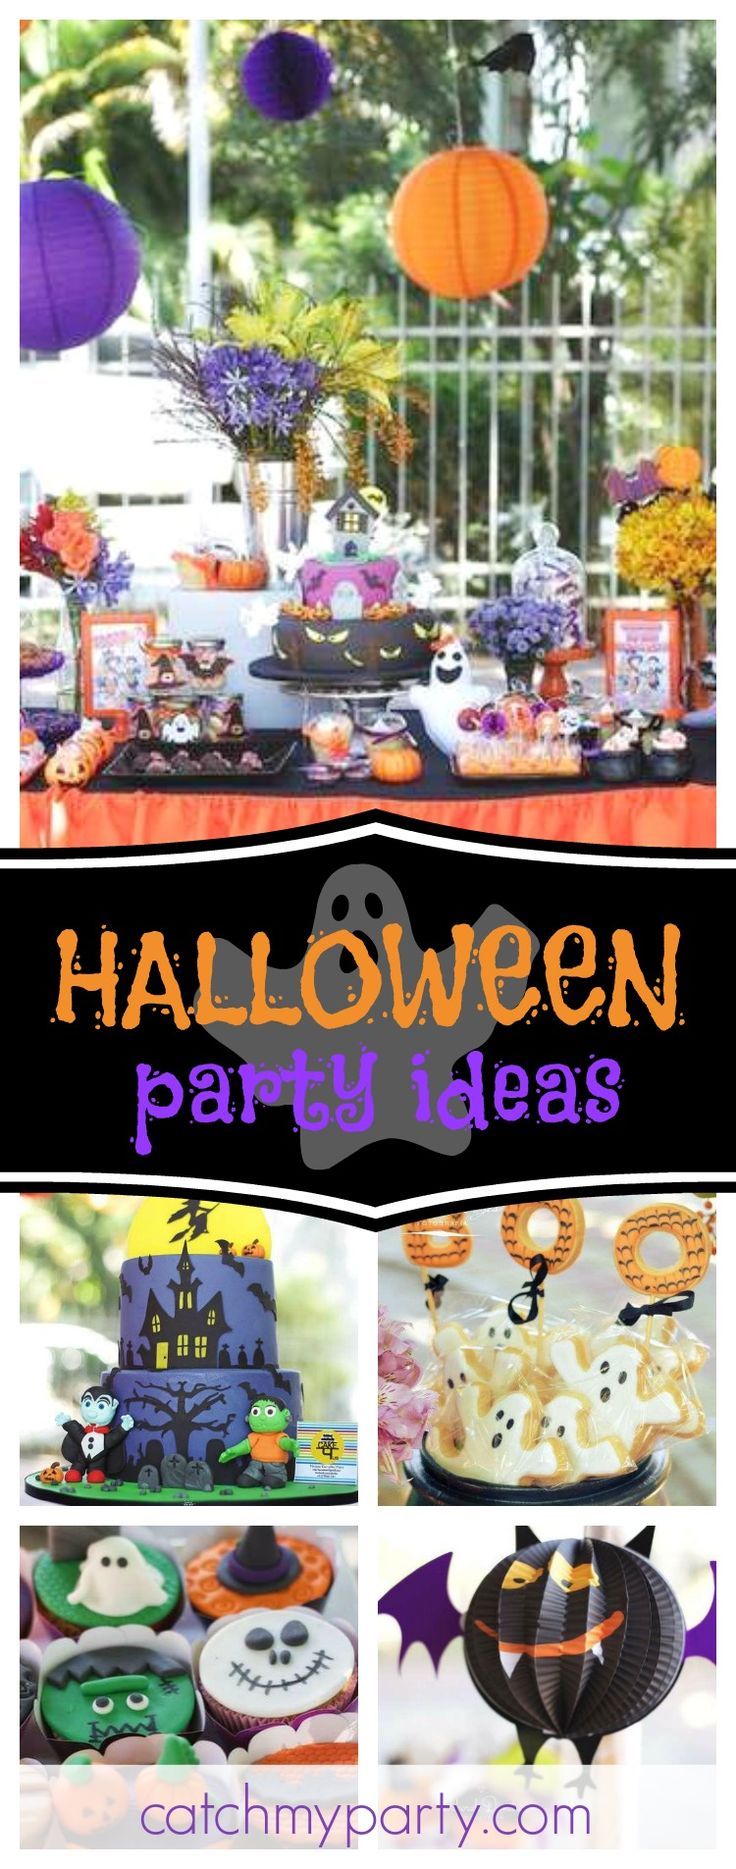 Check out this awesome Halloween party! The cakes are so cool!! See more party ideas and share yours at CatchMyParty.com #halloween #halloweenparty